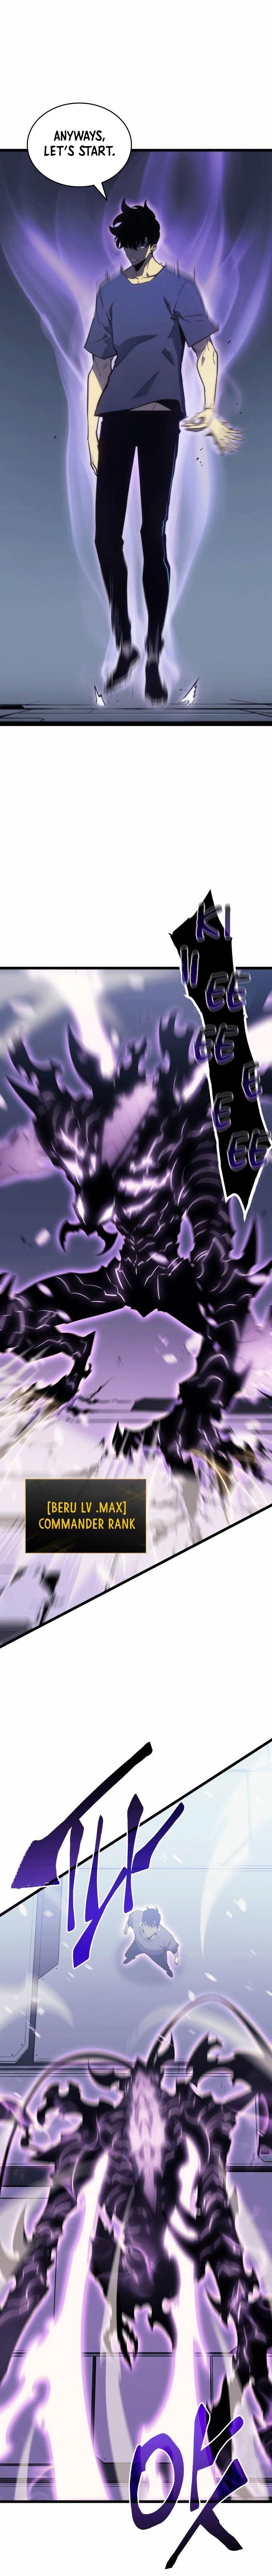 Solo Leveling, Chapter 154 image 012